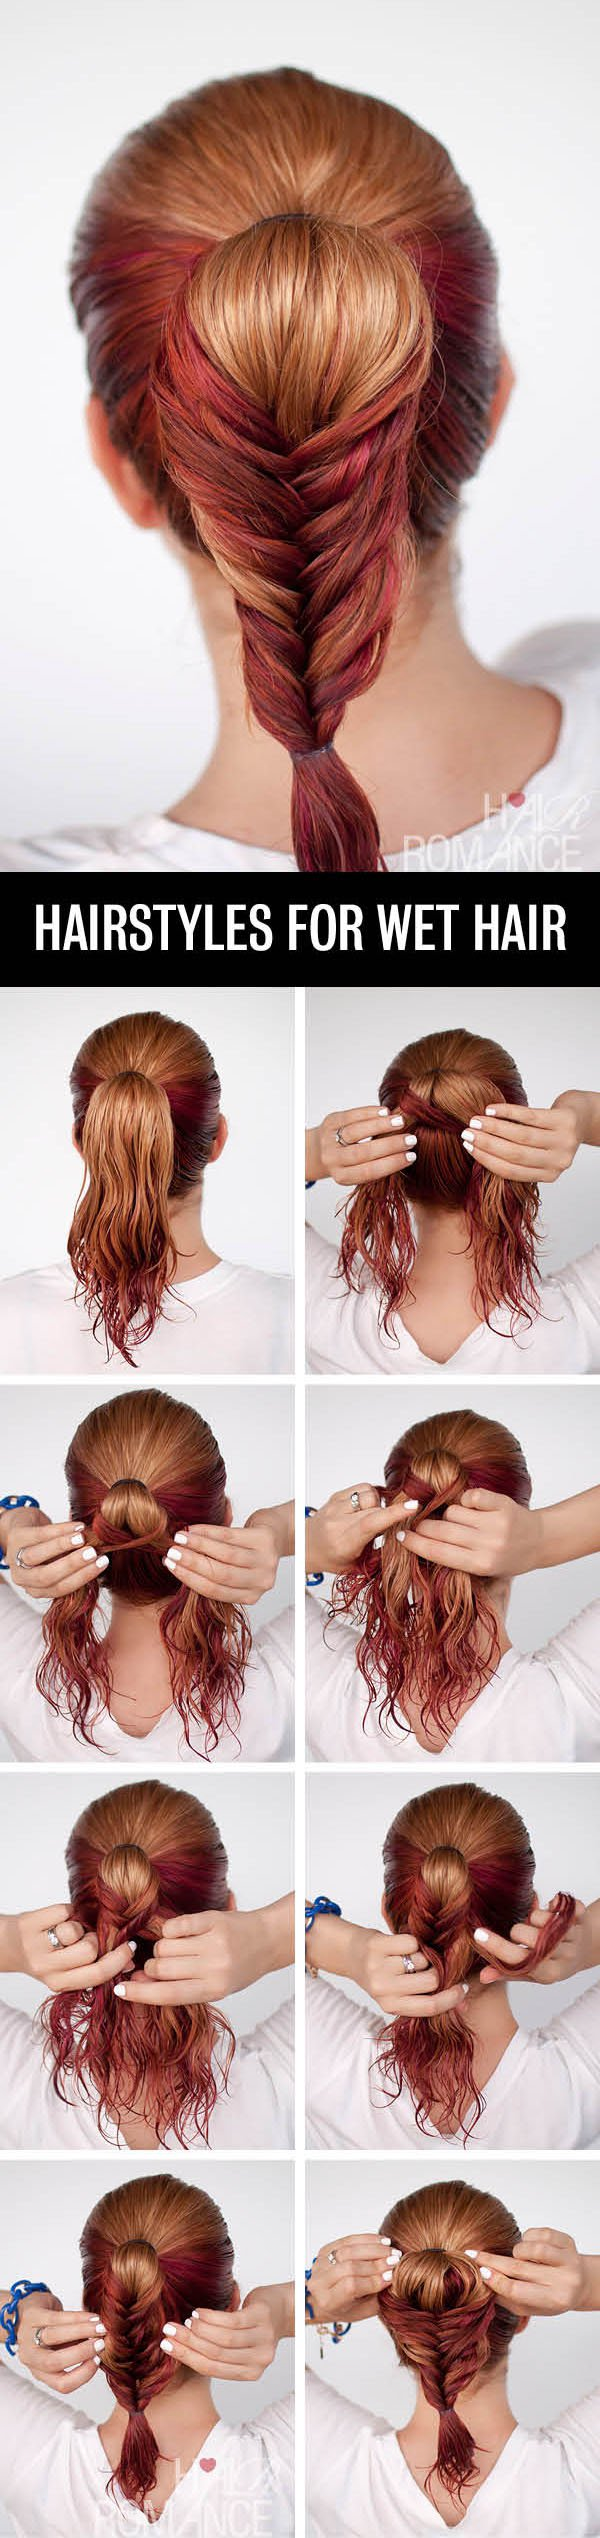 Braided ponytail hairstyle tutorial